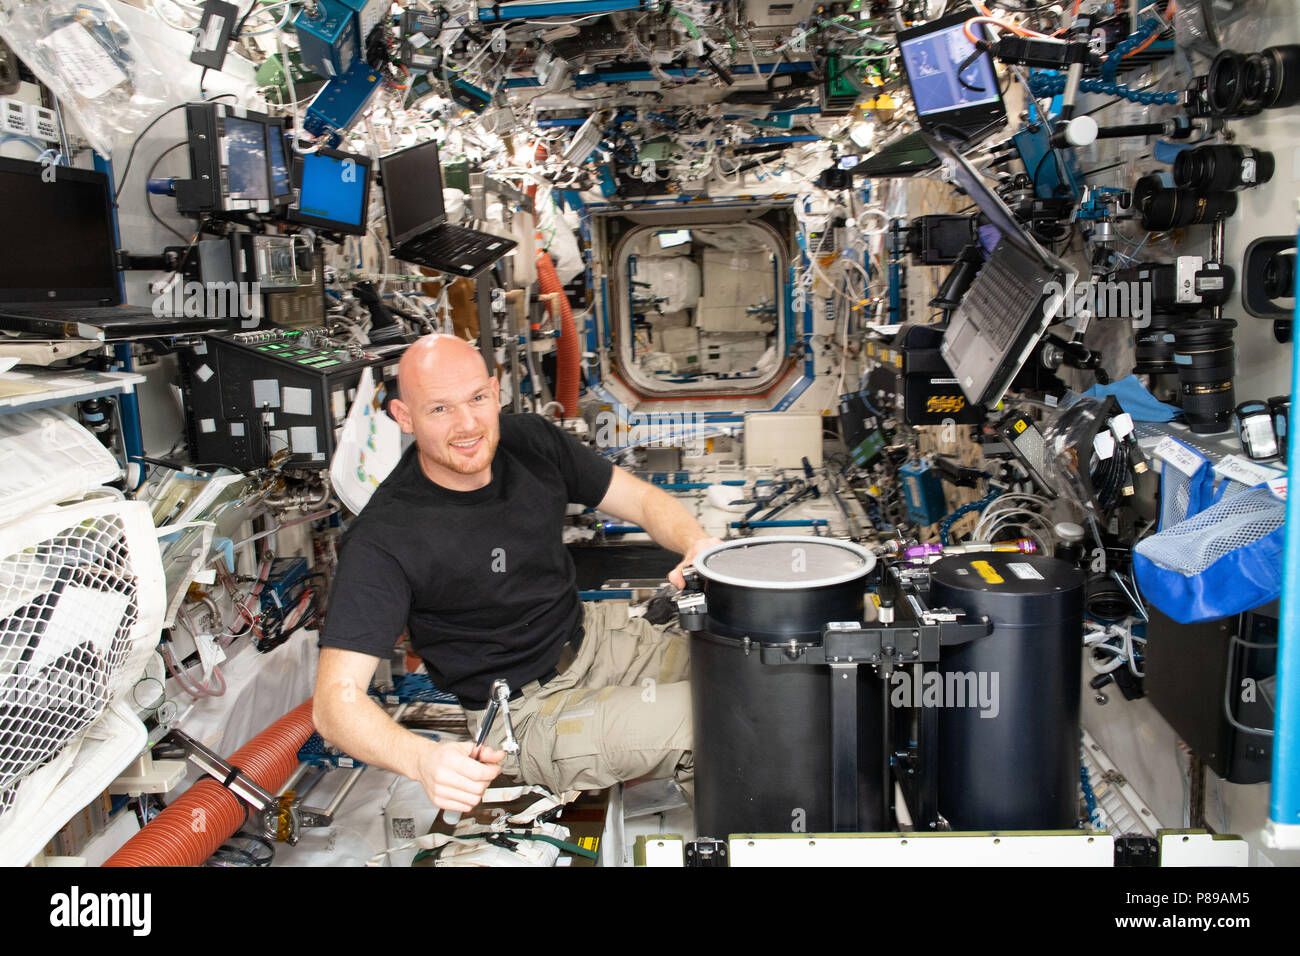 Expedition 57 crew member German astronaut Alexander Gerst of the European Space Agency works on life support maintenance inside the Destiny laboratory module aboard the International Space Station June 25, 2018 in Earth Orbit. - Stock Image